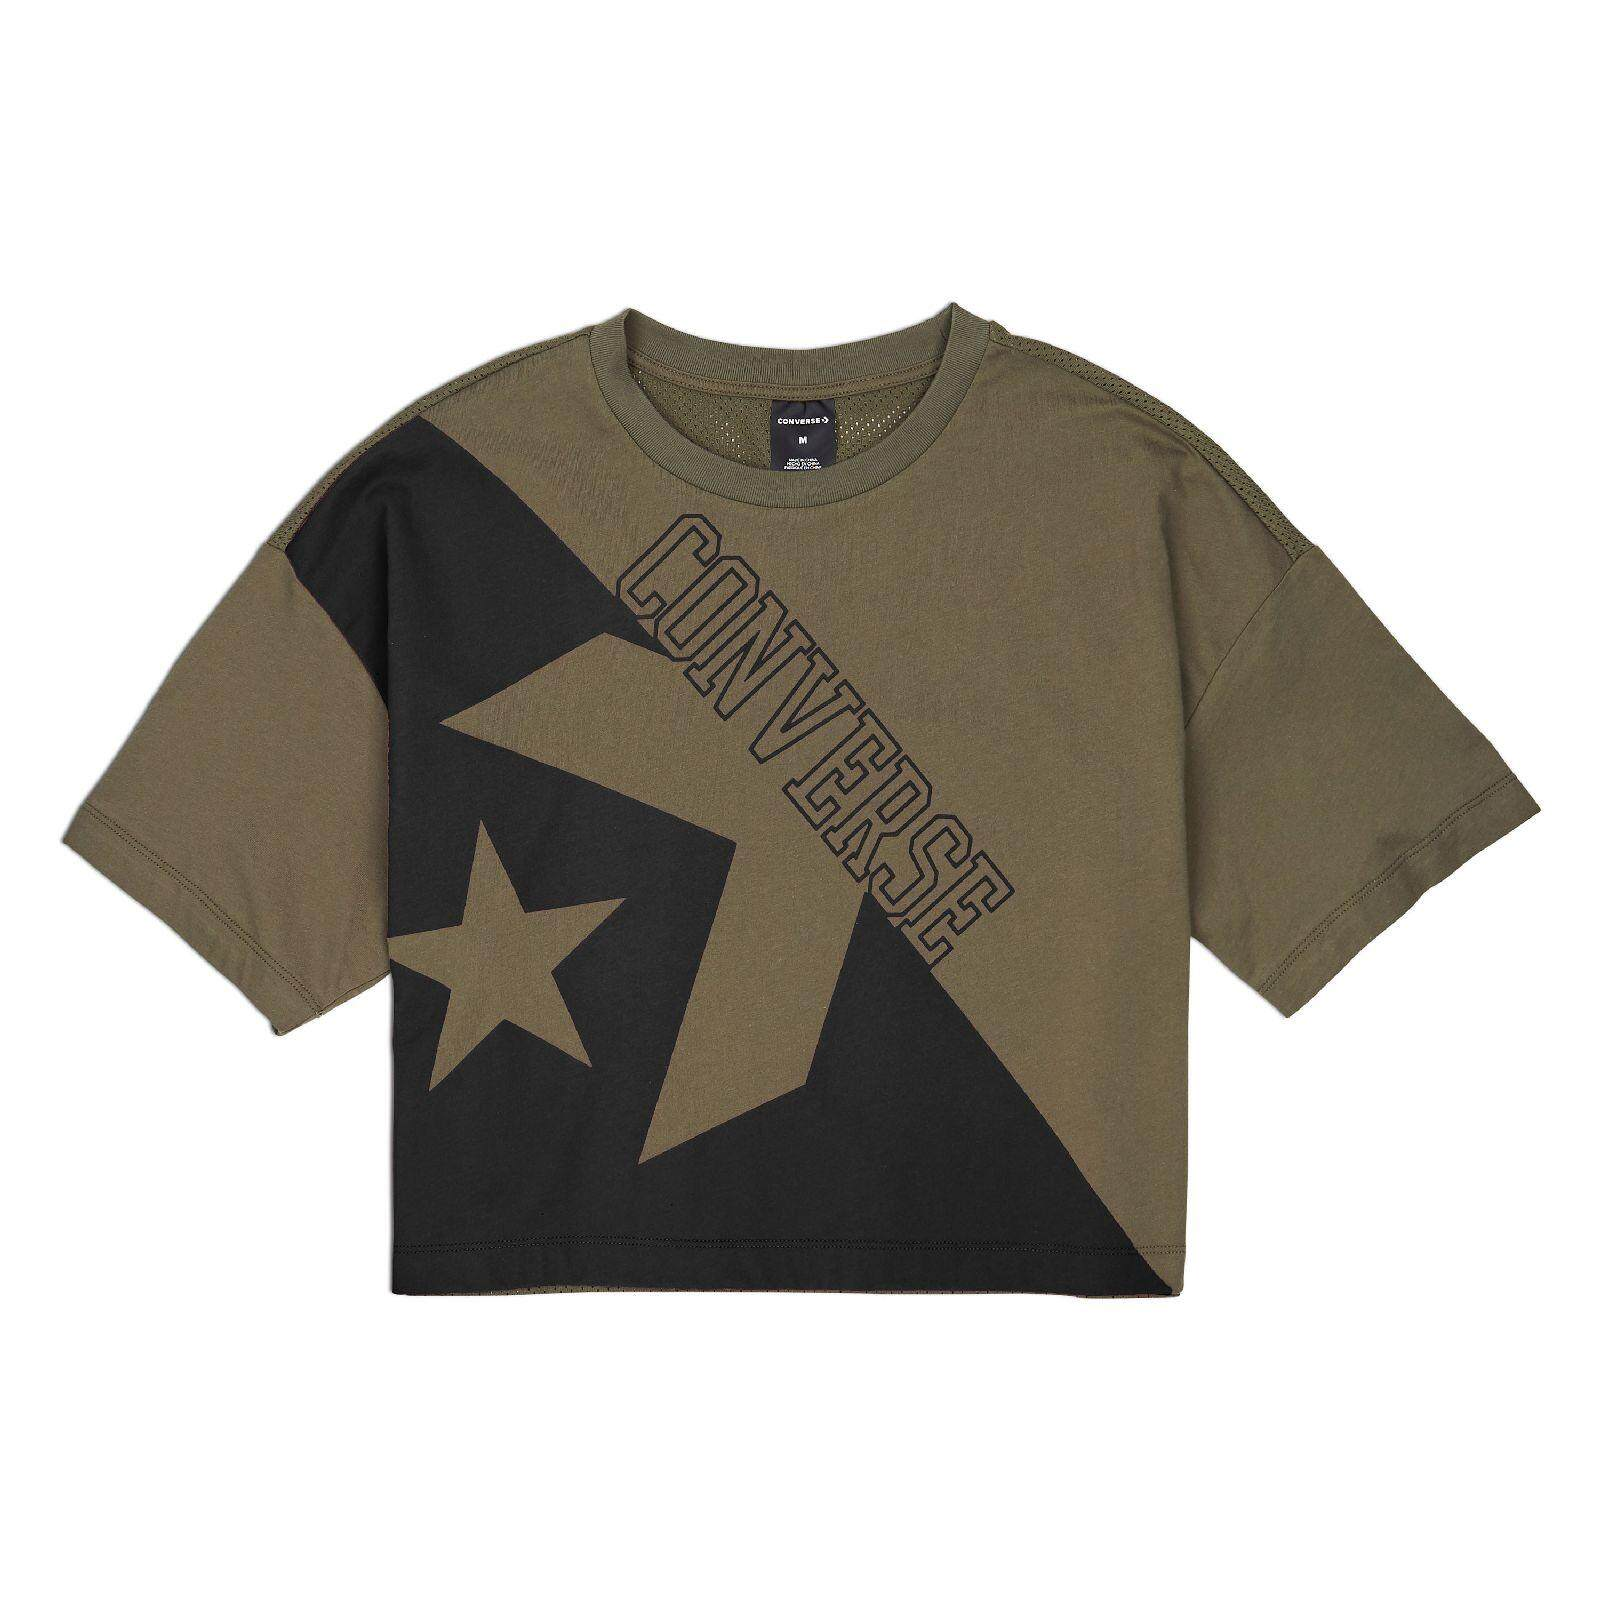 CONVERSE LINEAR WORDMARK BOXY TEE - FIELD SURPLUS - 10008582-322